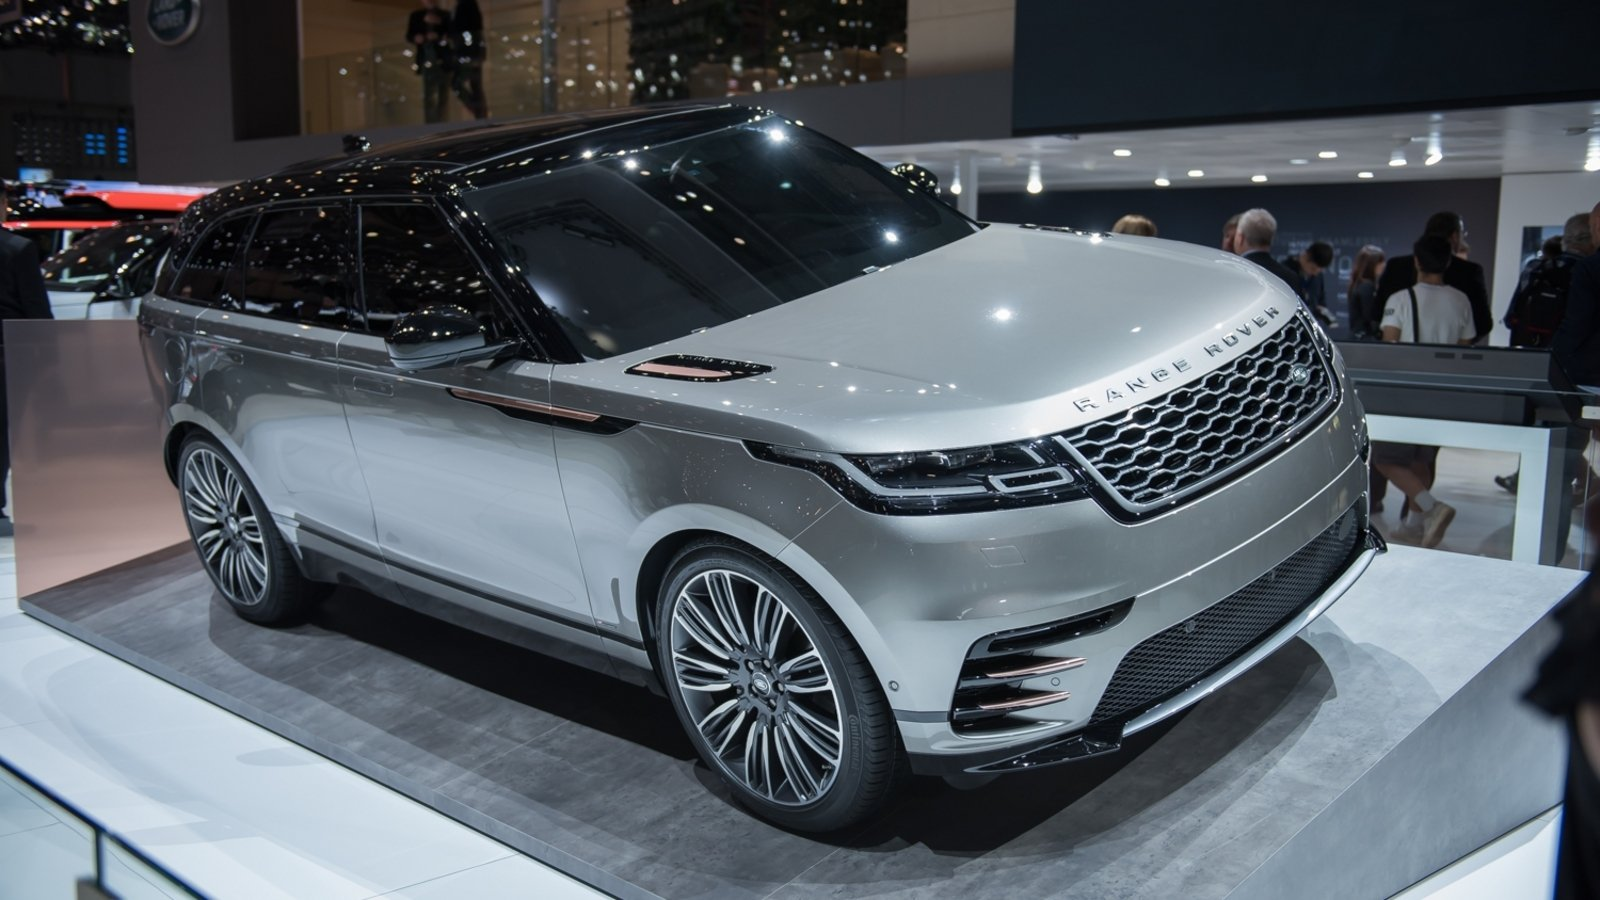 2018 land rover range rover velar review top speed. Black Bedroom Furniture Sets. Home Design Ideas